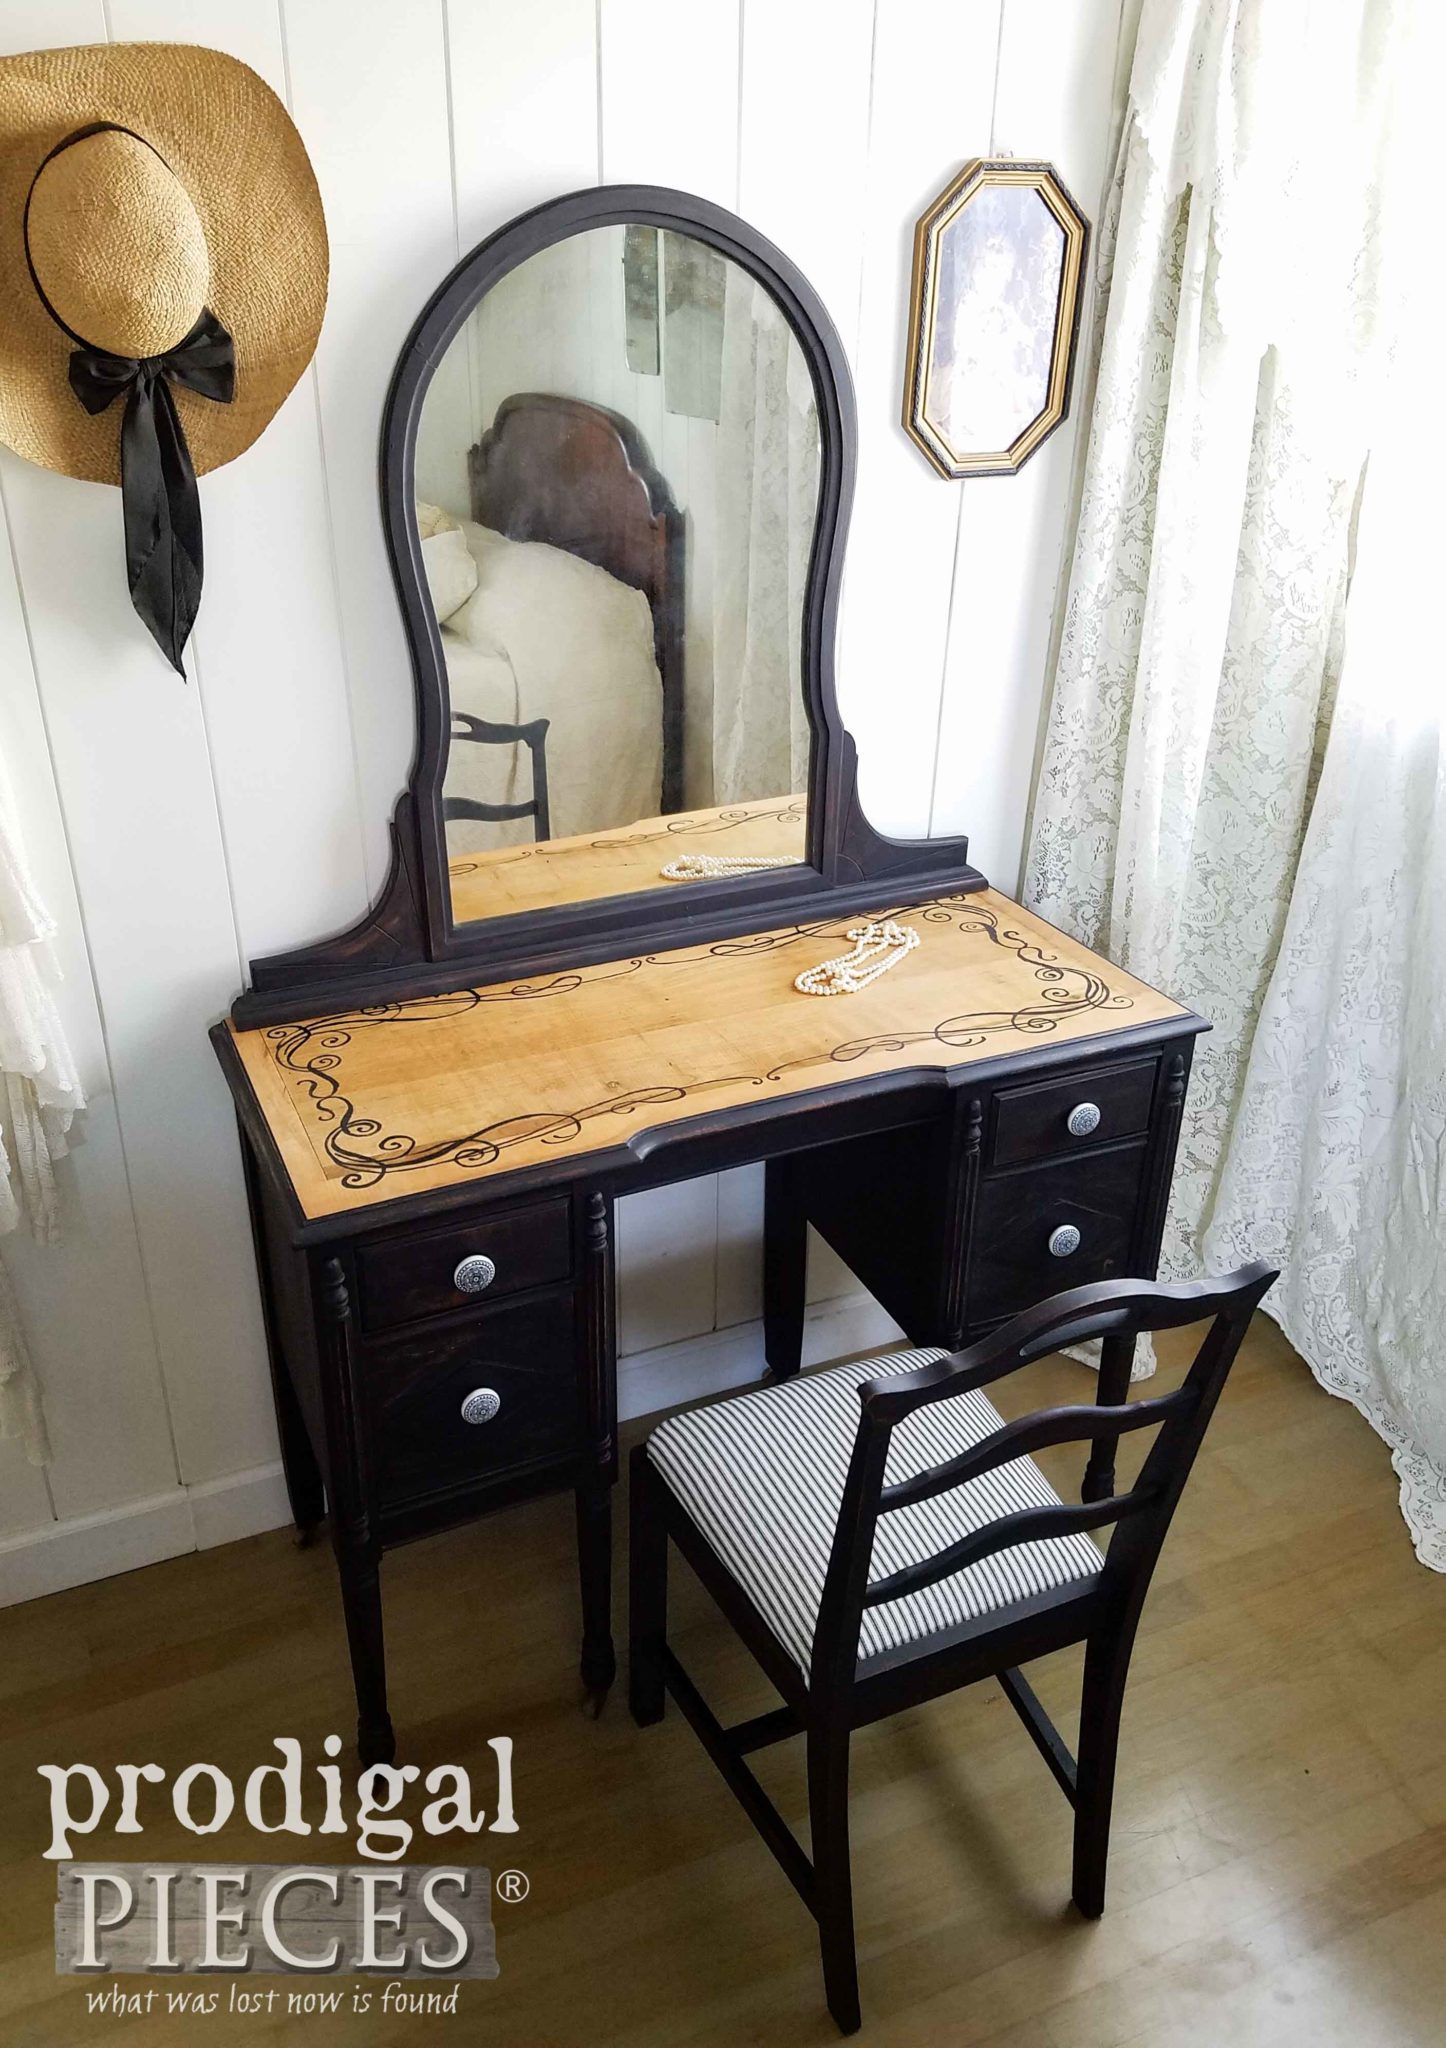 Black Antique Vanity ~ Rustic & Refined - Prodigal Pieces - Black Antique Vanity ~ Rustic & Refined Antique Vanity, Vanities